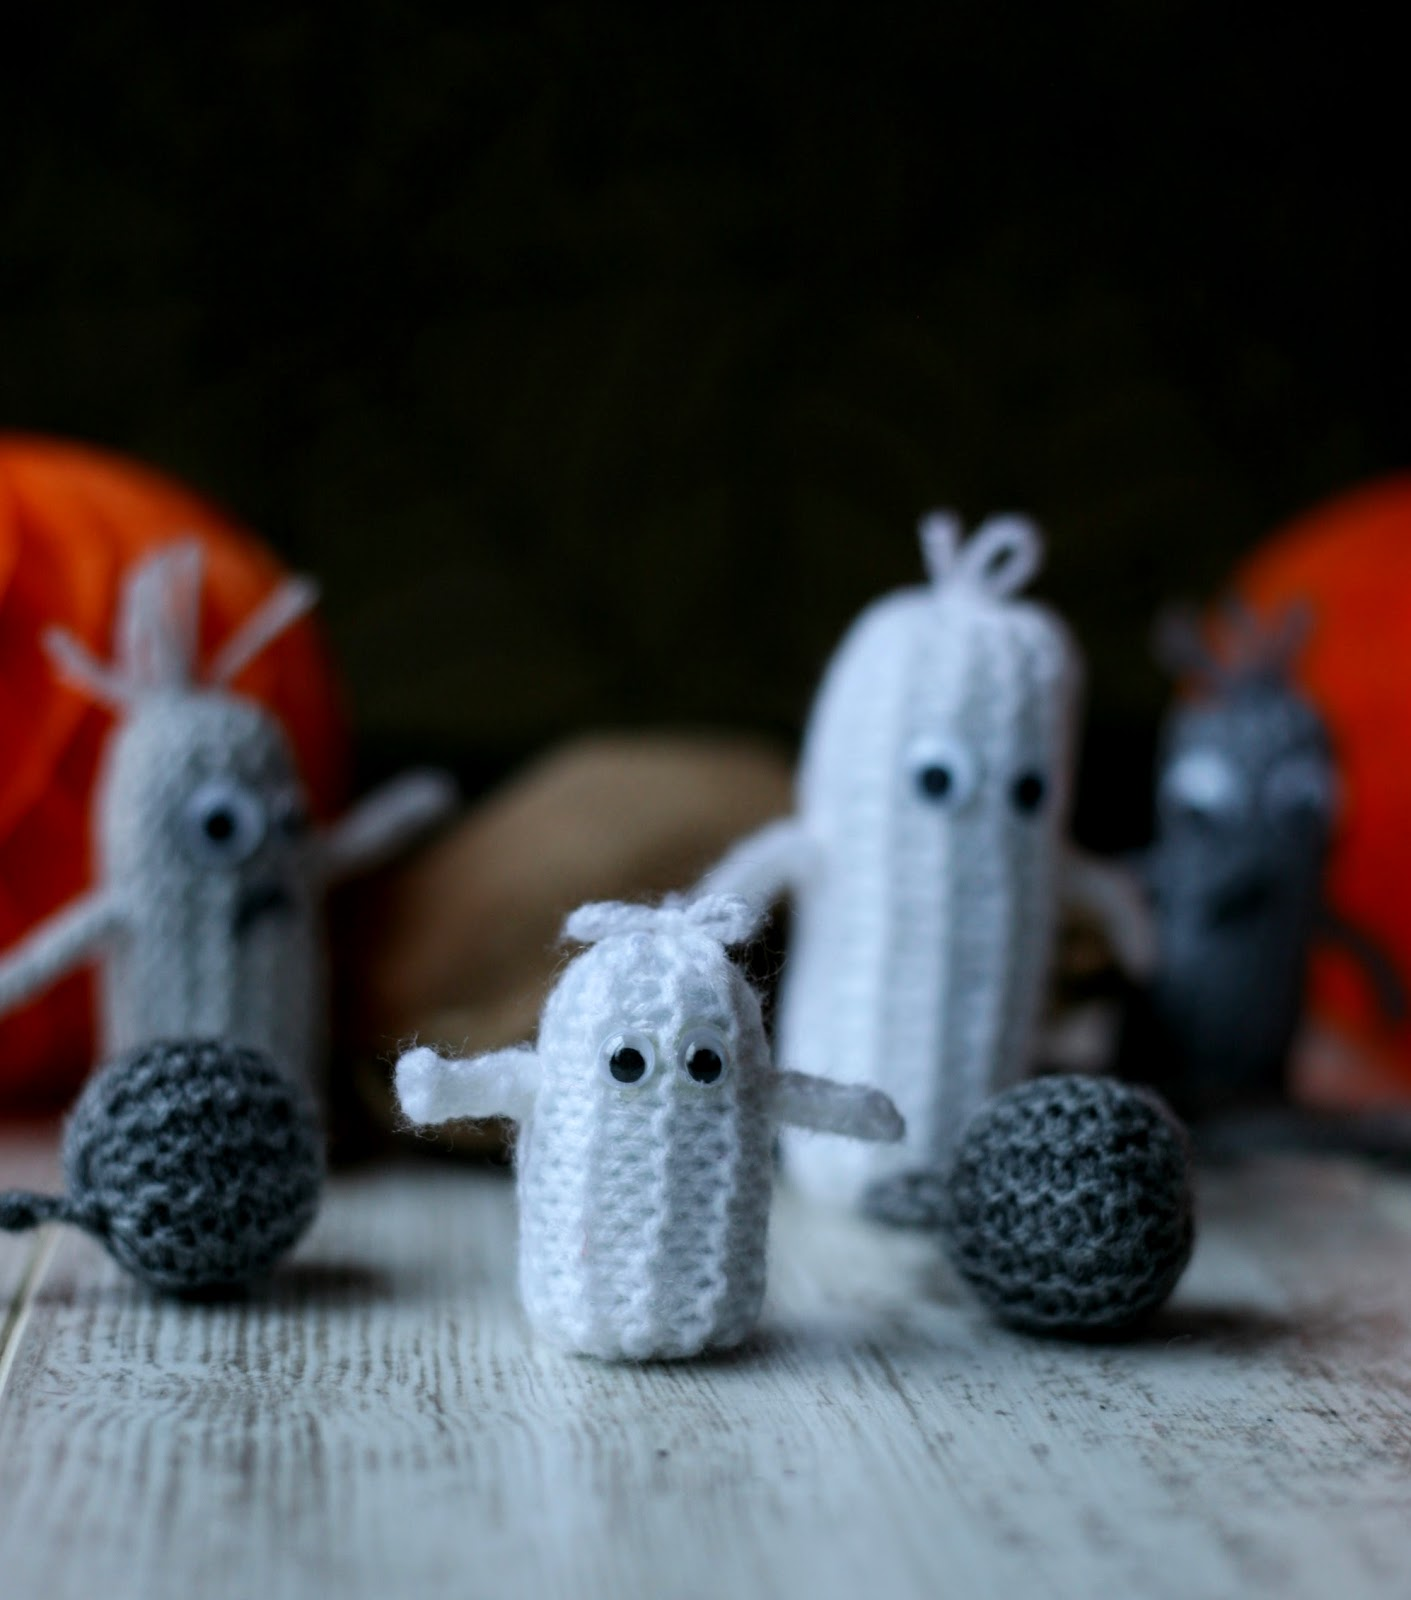 Fun and Easy Knitting Hallowe'en Patterns thanks to Jean Greehowe. www.goodfoodshared.blogspot.com